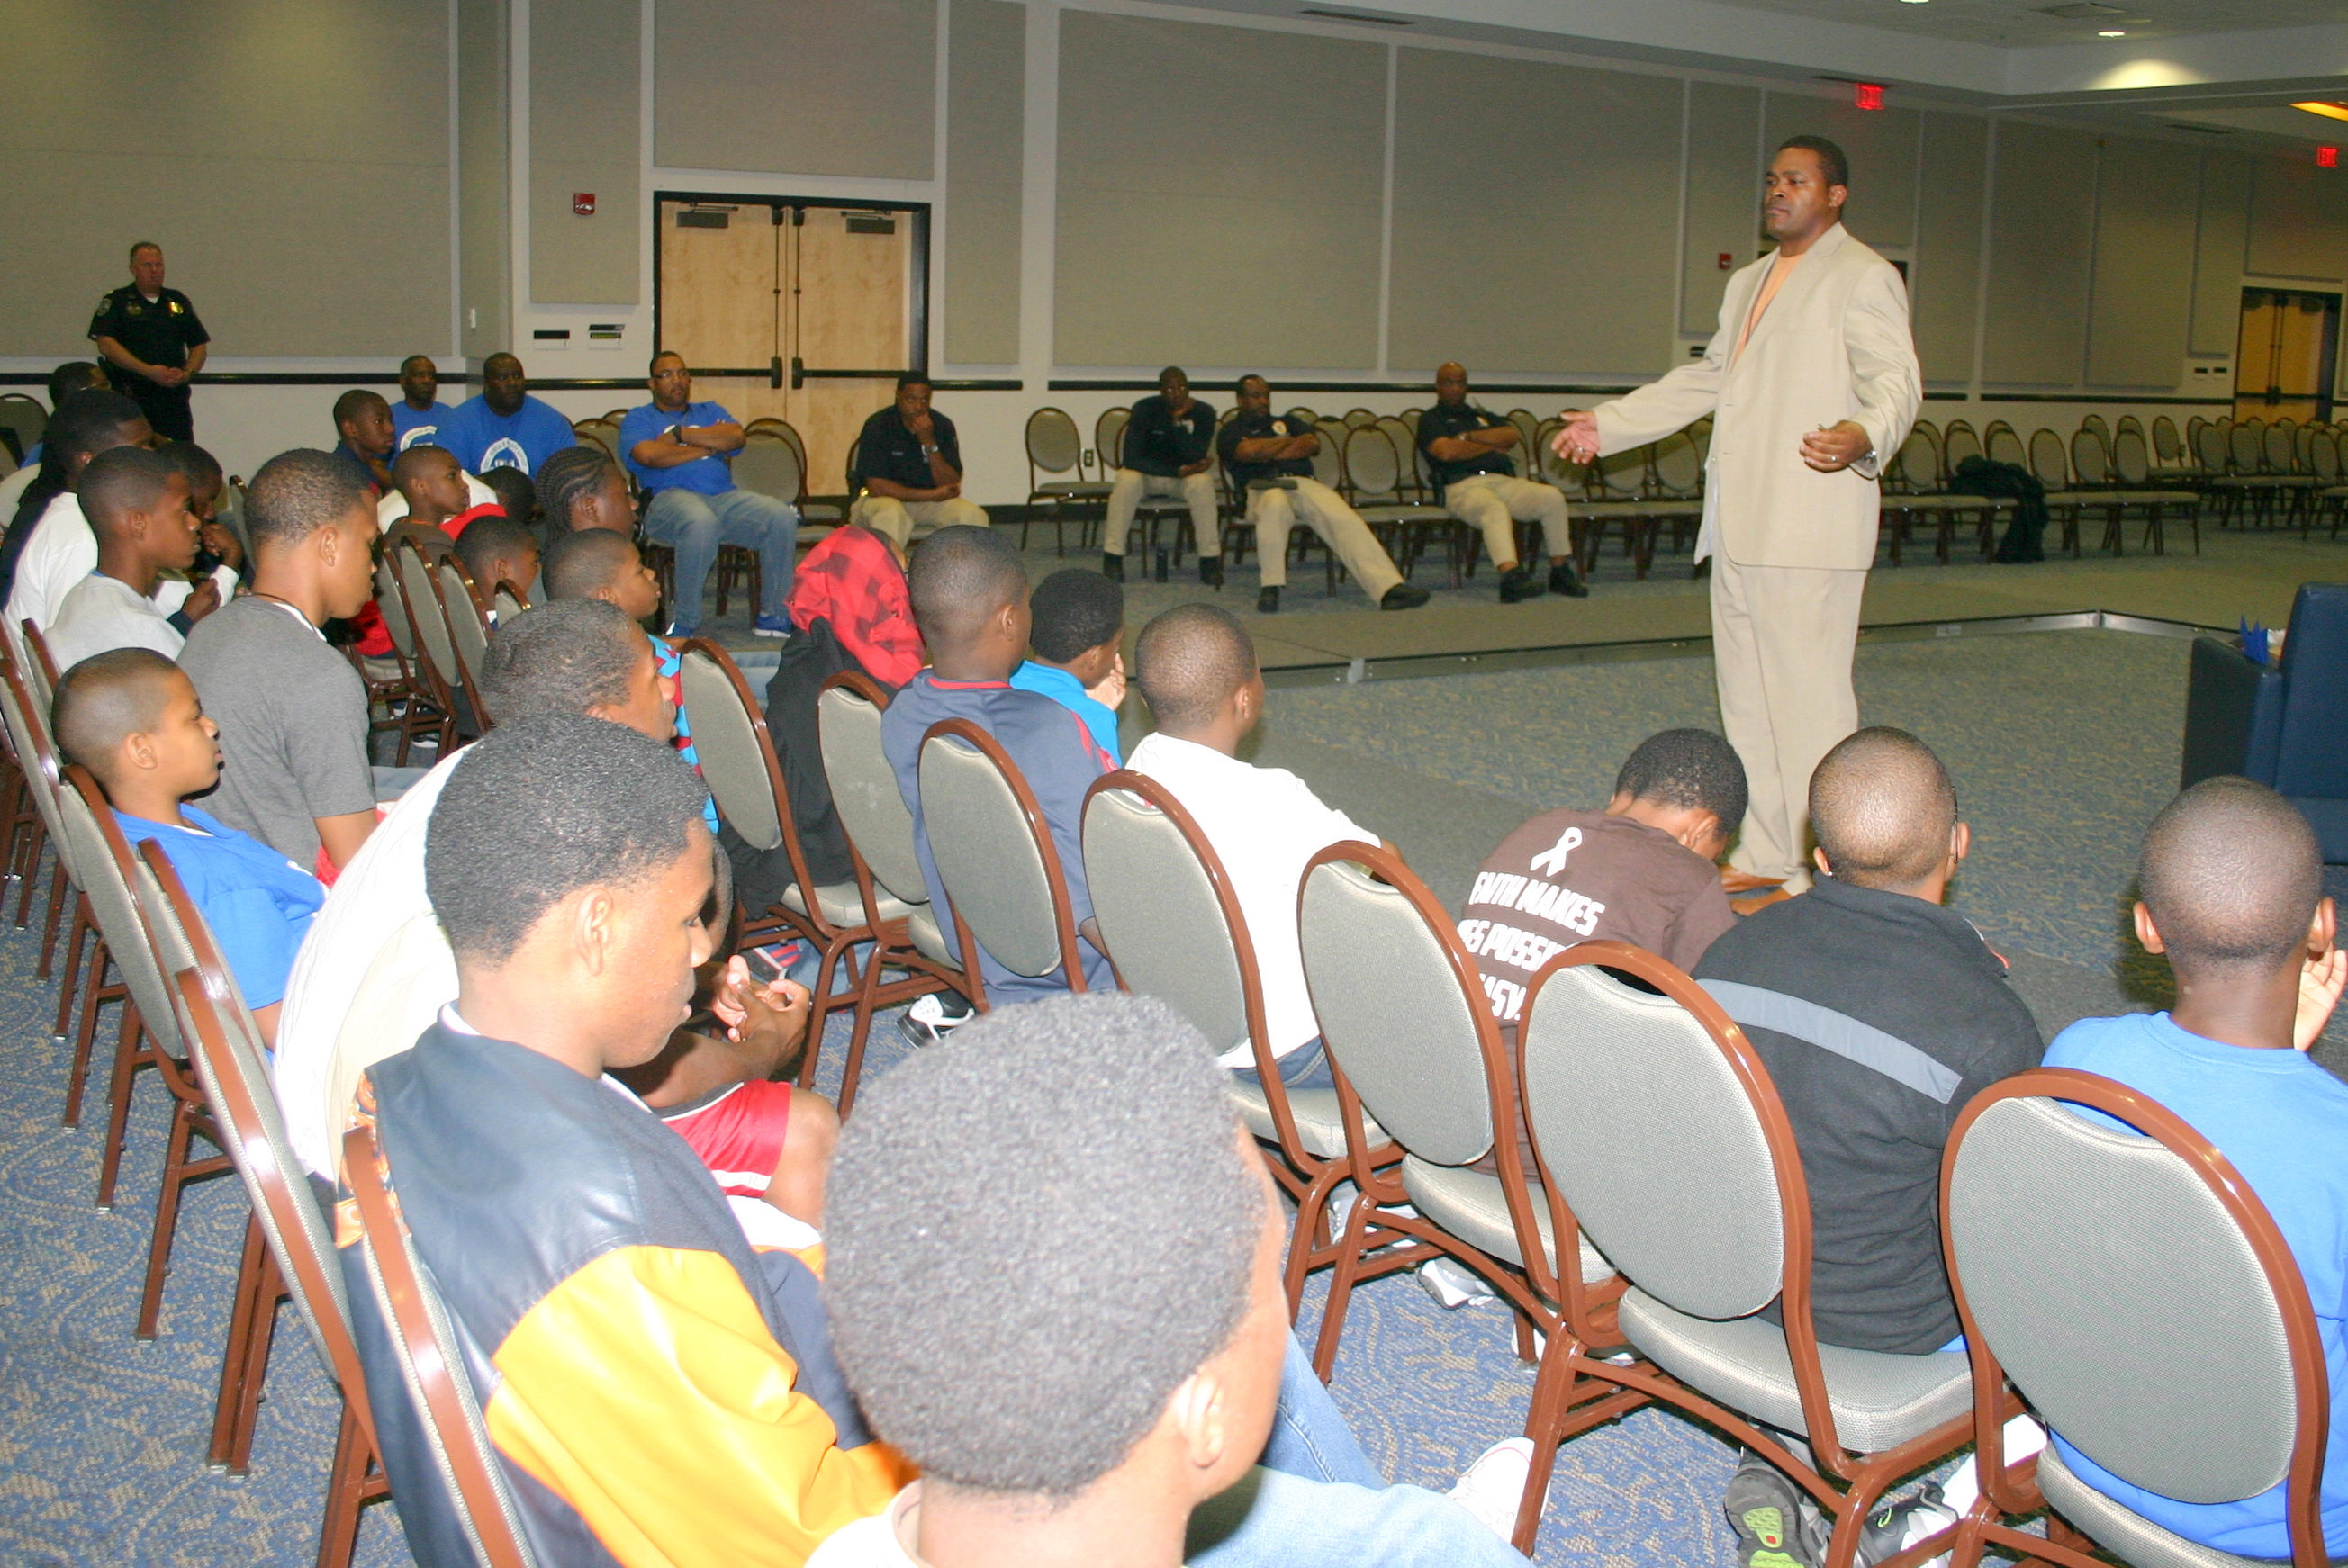 Britt Henderson reaches out to campers on planning for life, based on his own experiences.